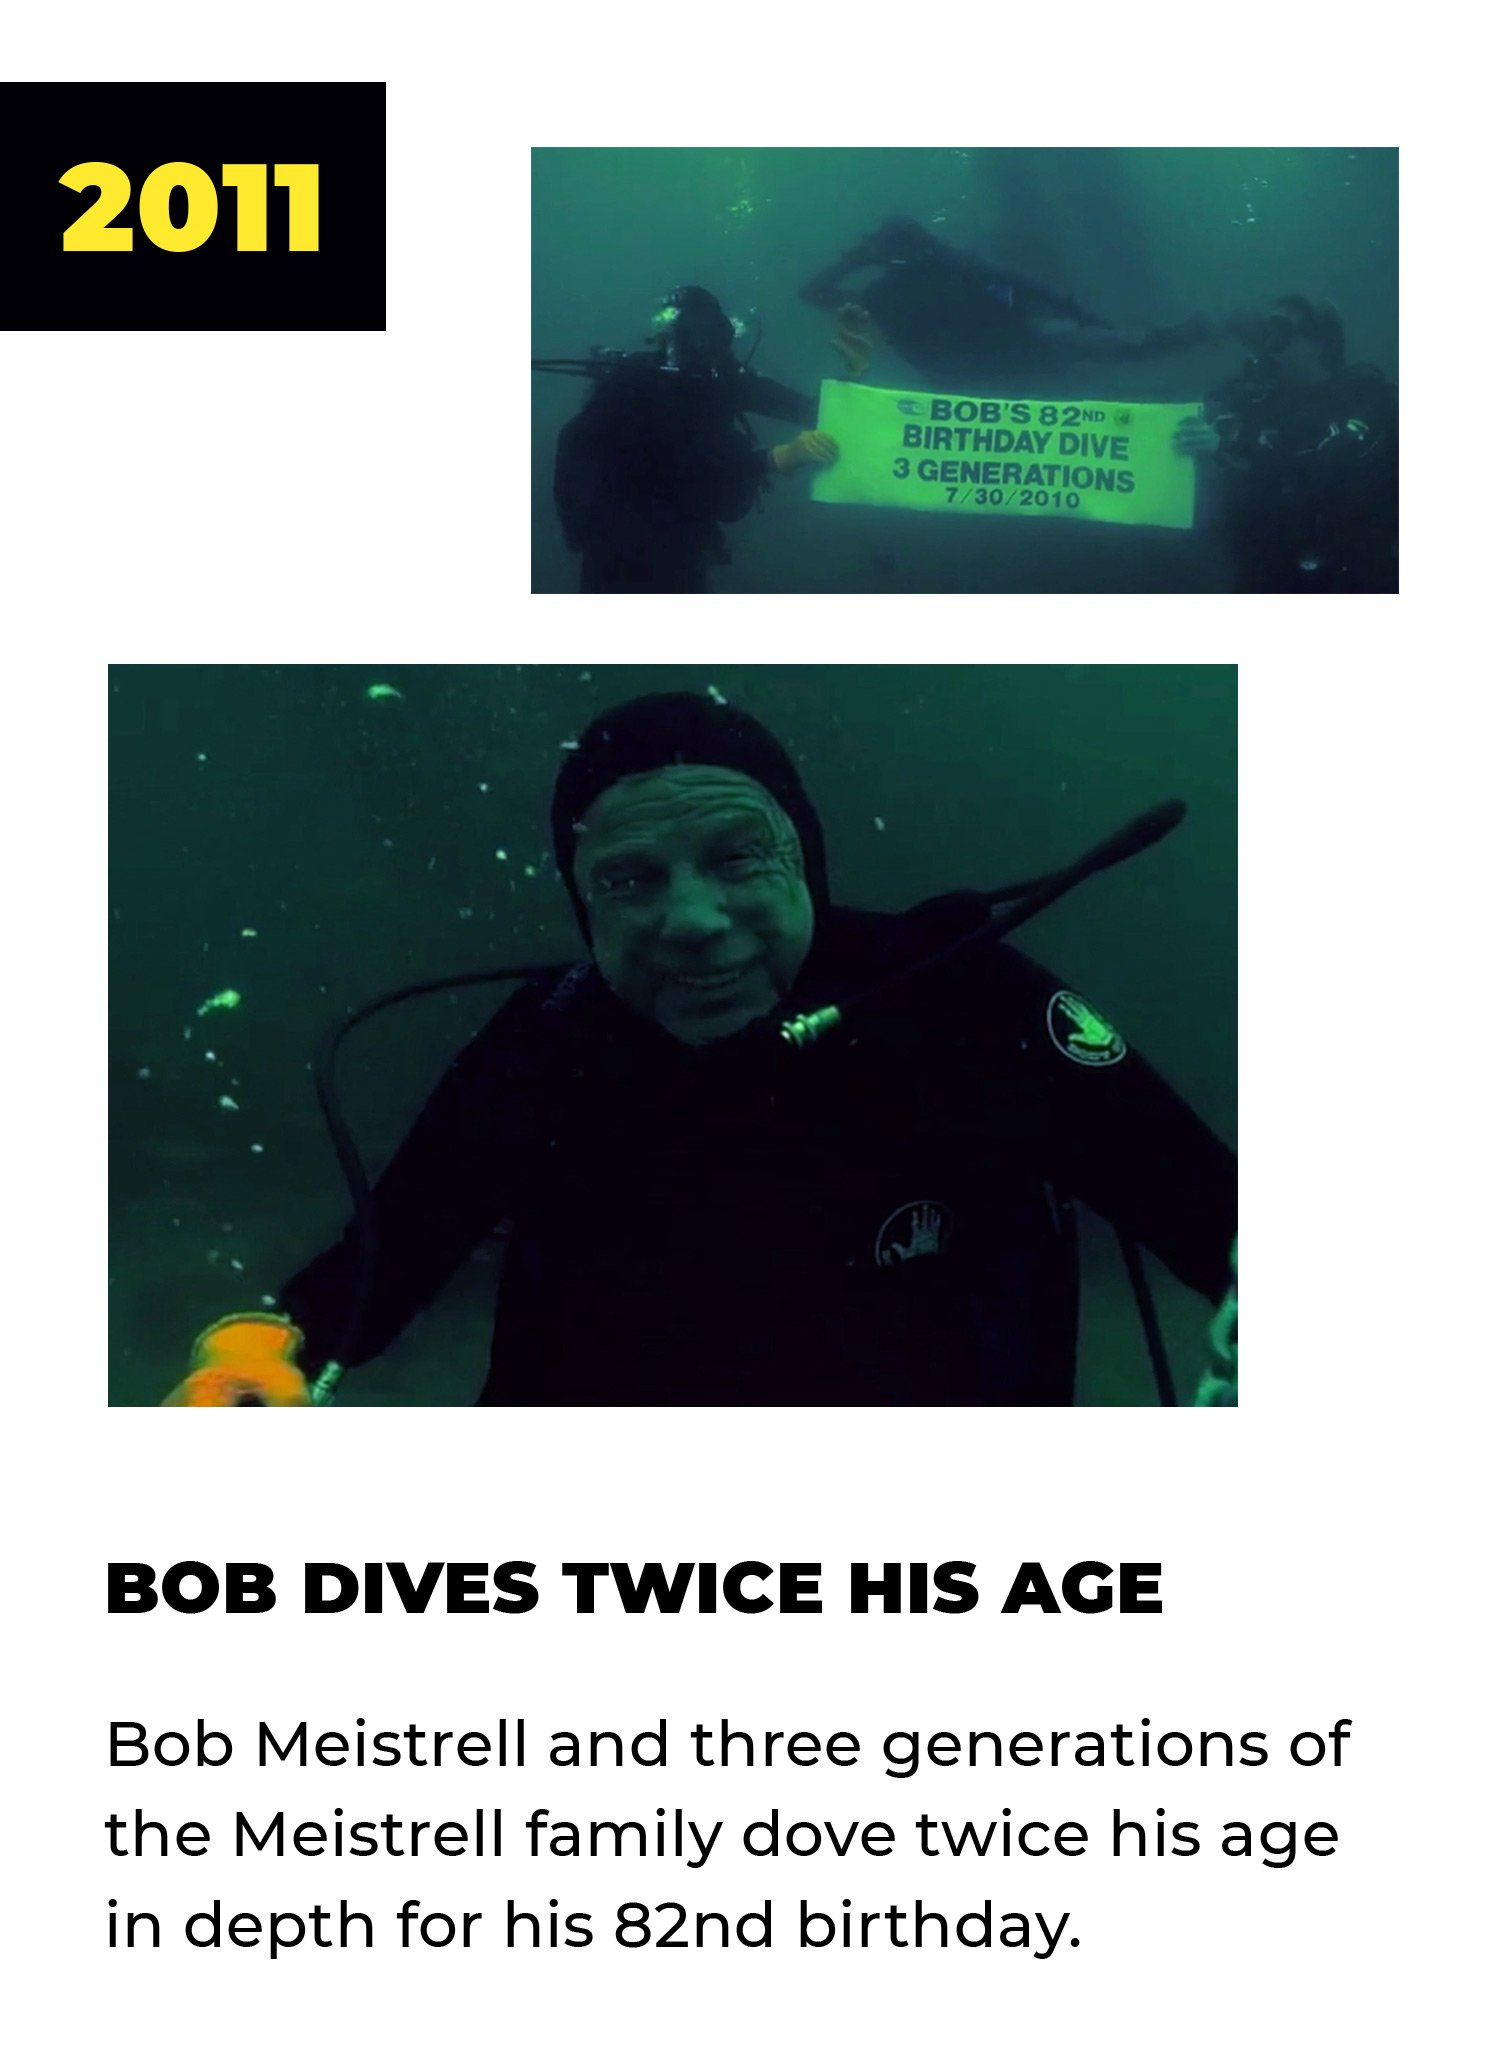 2011 | Bob Dives Twice His Age | Bob Meistrell and three generations of the Meistrell family dove twice his age in depth for his 82nd birthday.